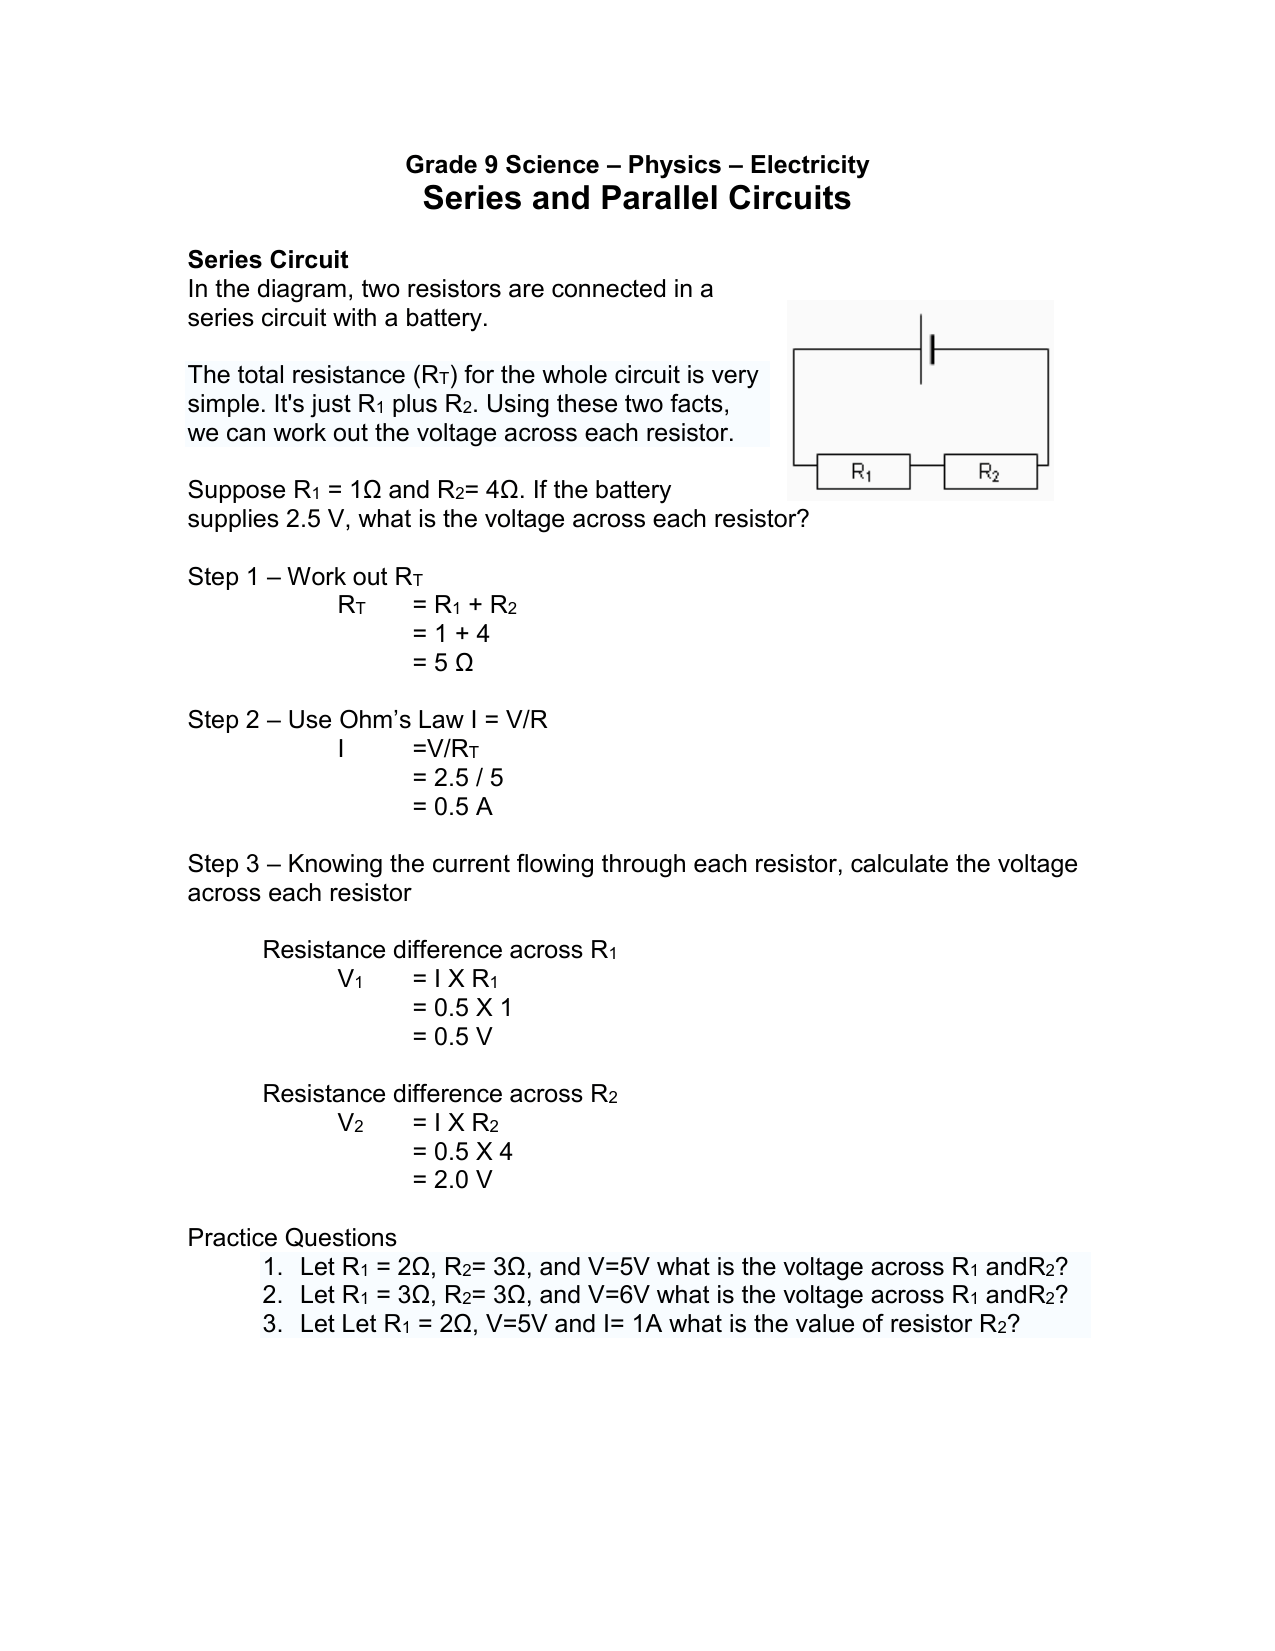 hight resolution of grade 9 science physics electricity series and parallel circuits series circuit in the diagram two resistors are connected in a series circuit with a